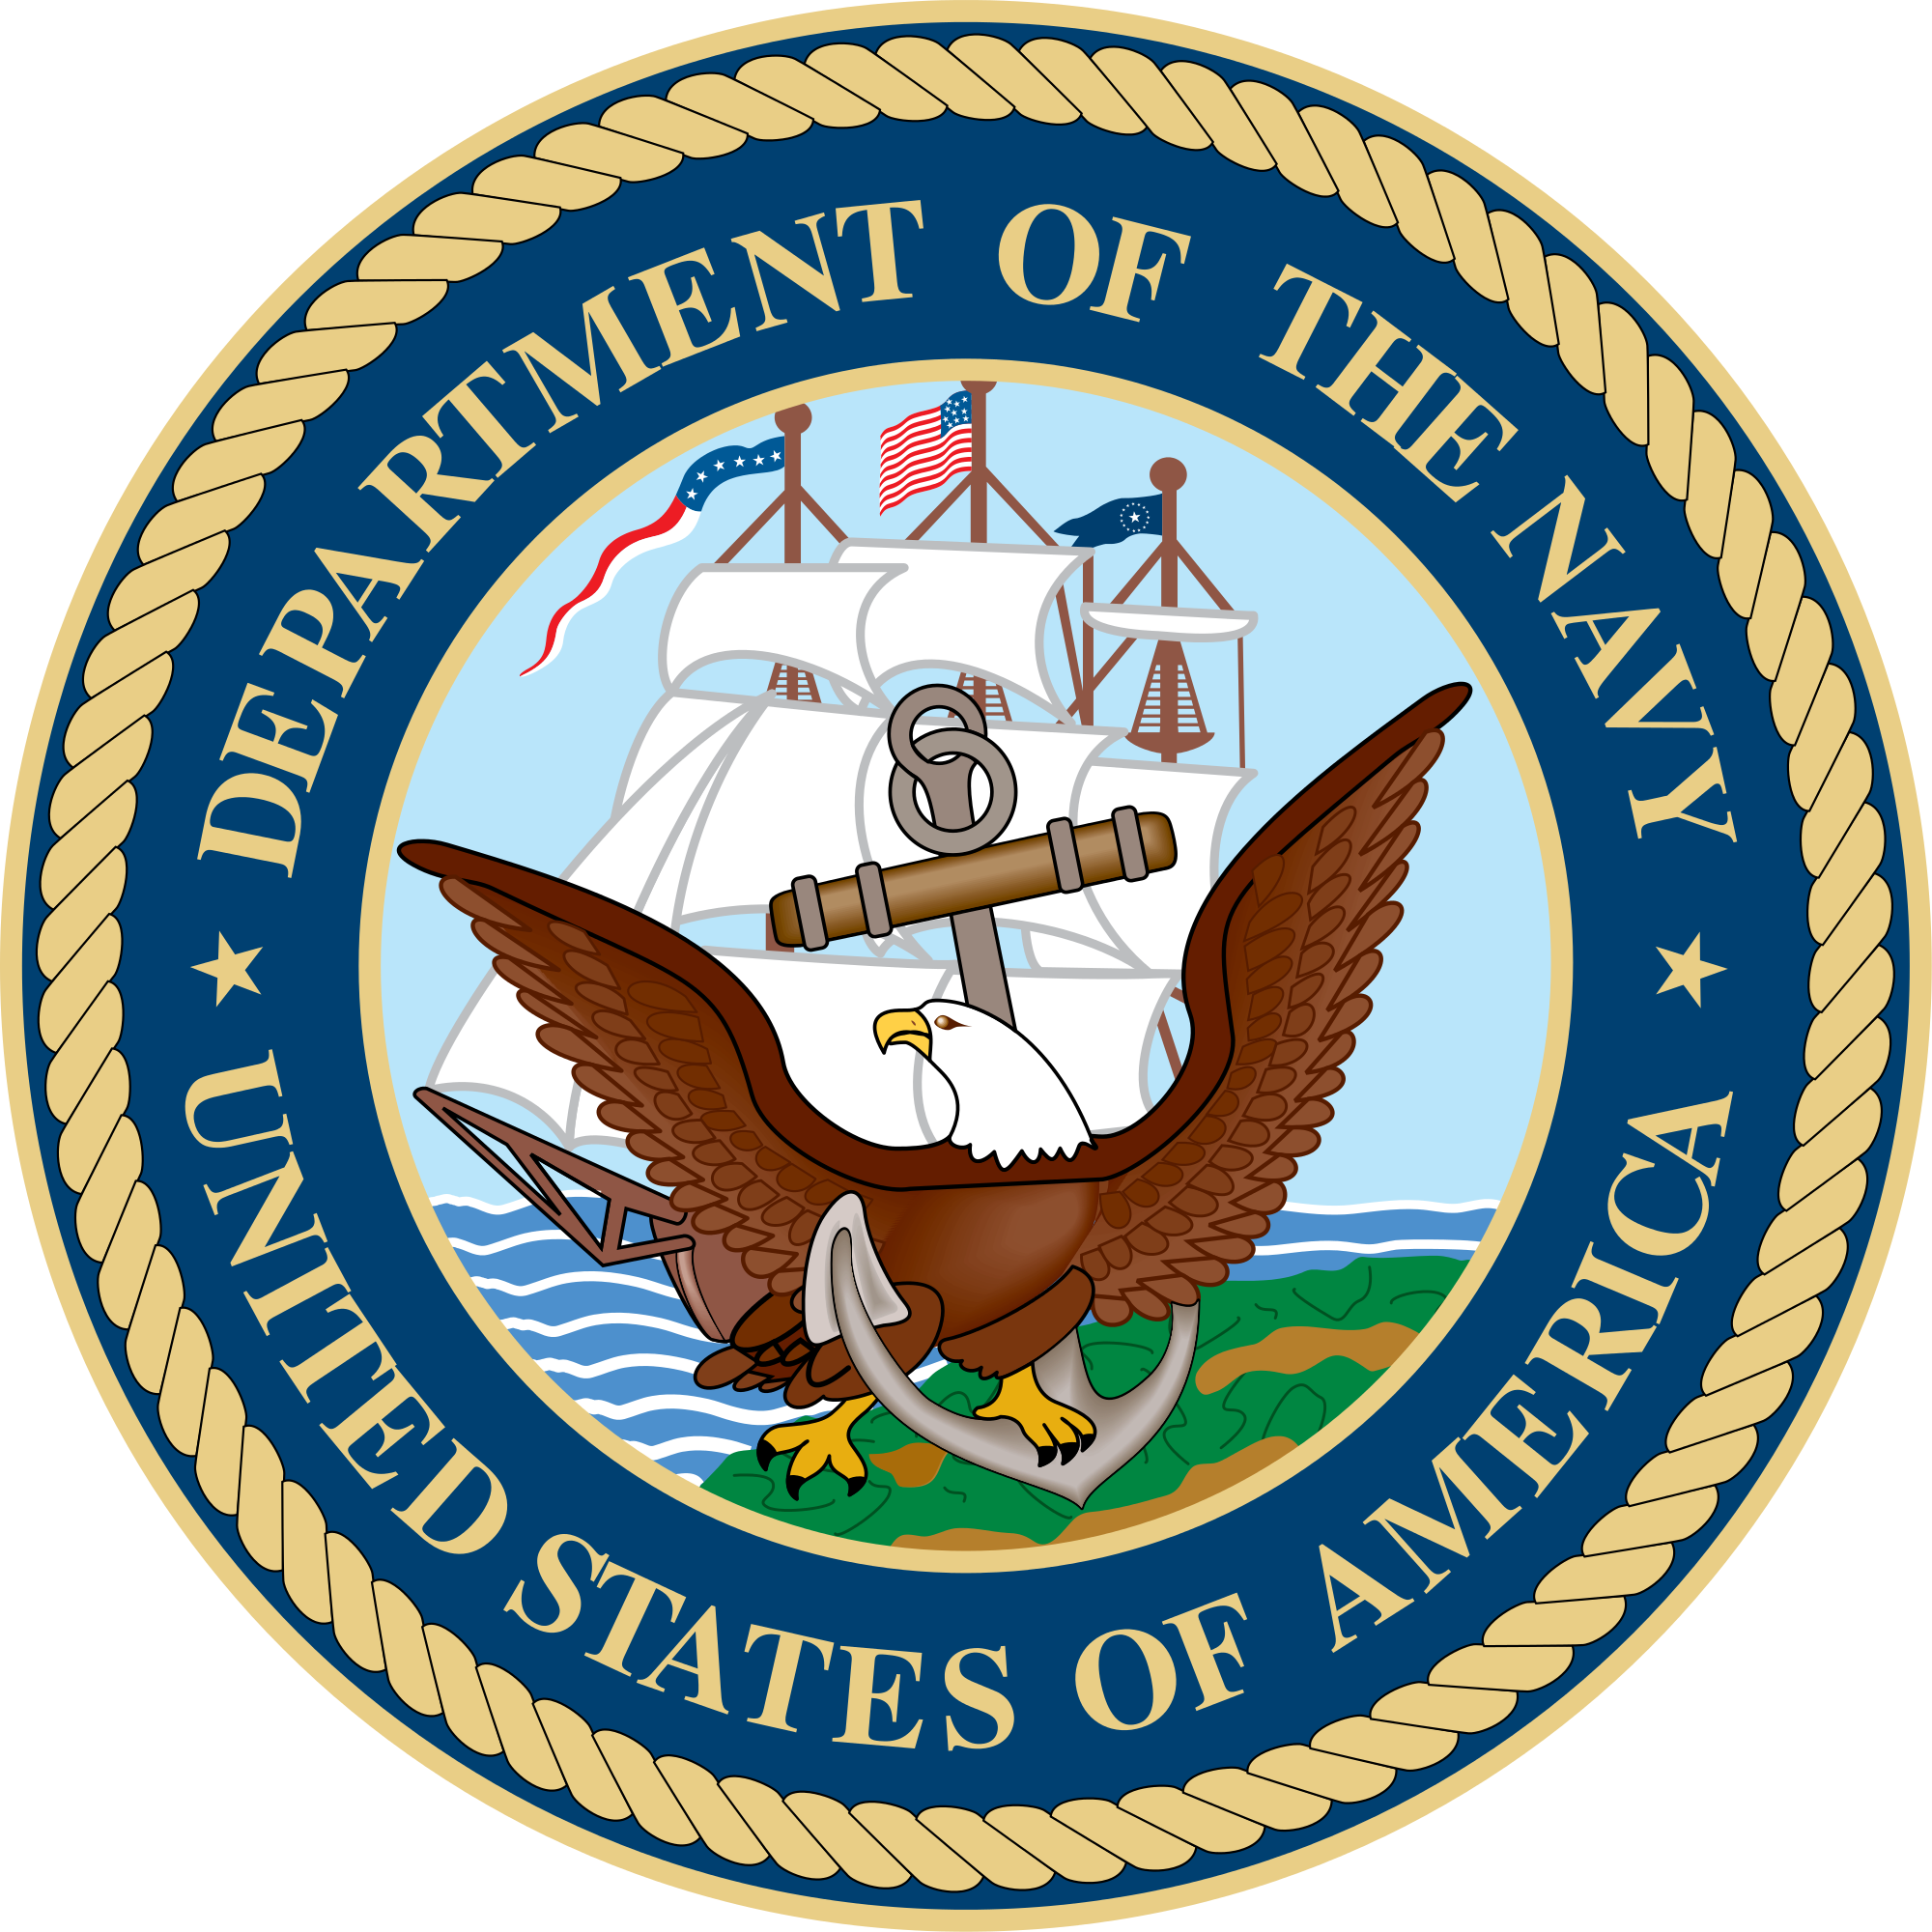 U.S. Department of the Navy Logo. Taught networking tips for introverts and individual development plans for employees